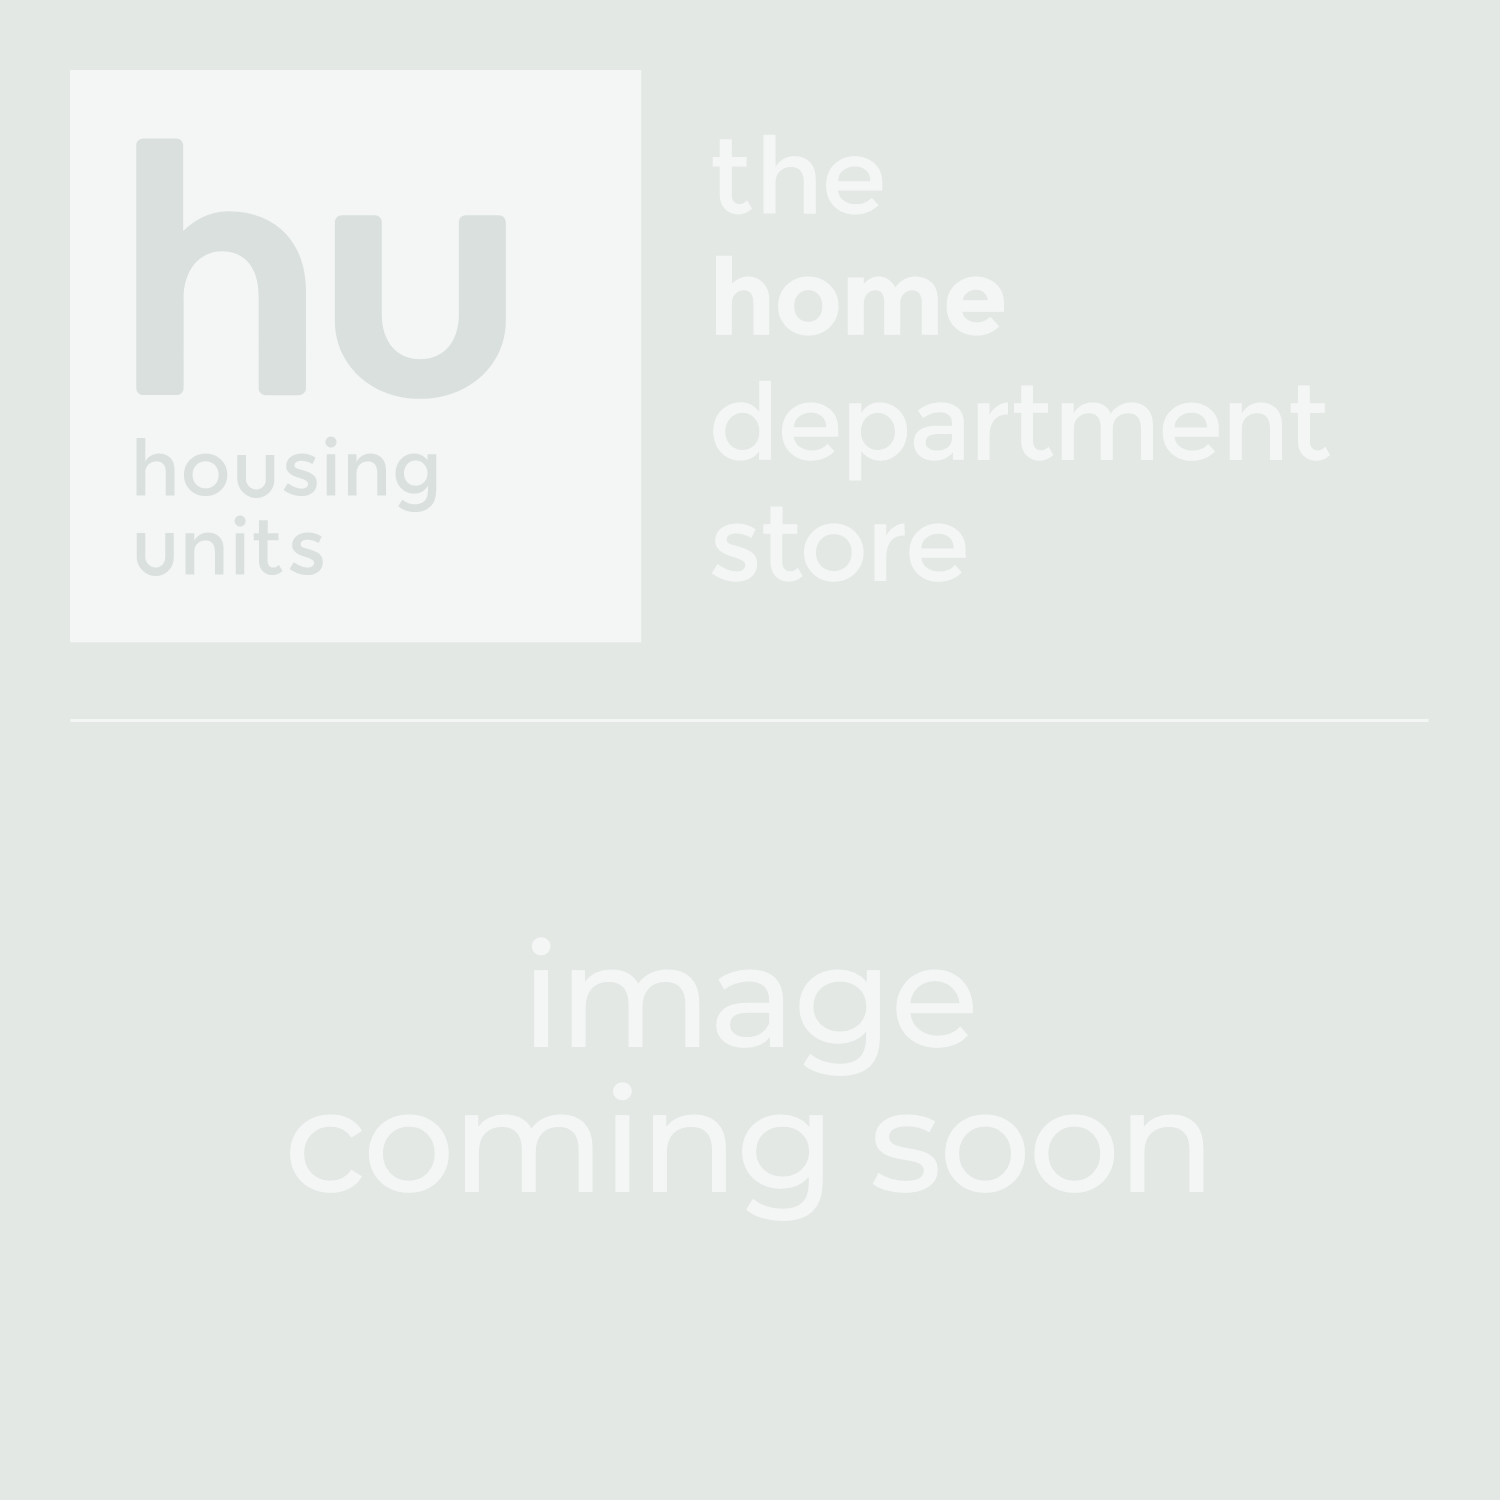 Breville Flow White and Gold Jug Kettle   Housing Units